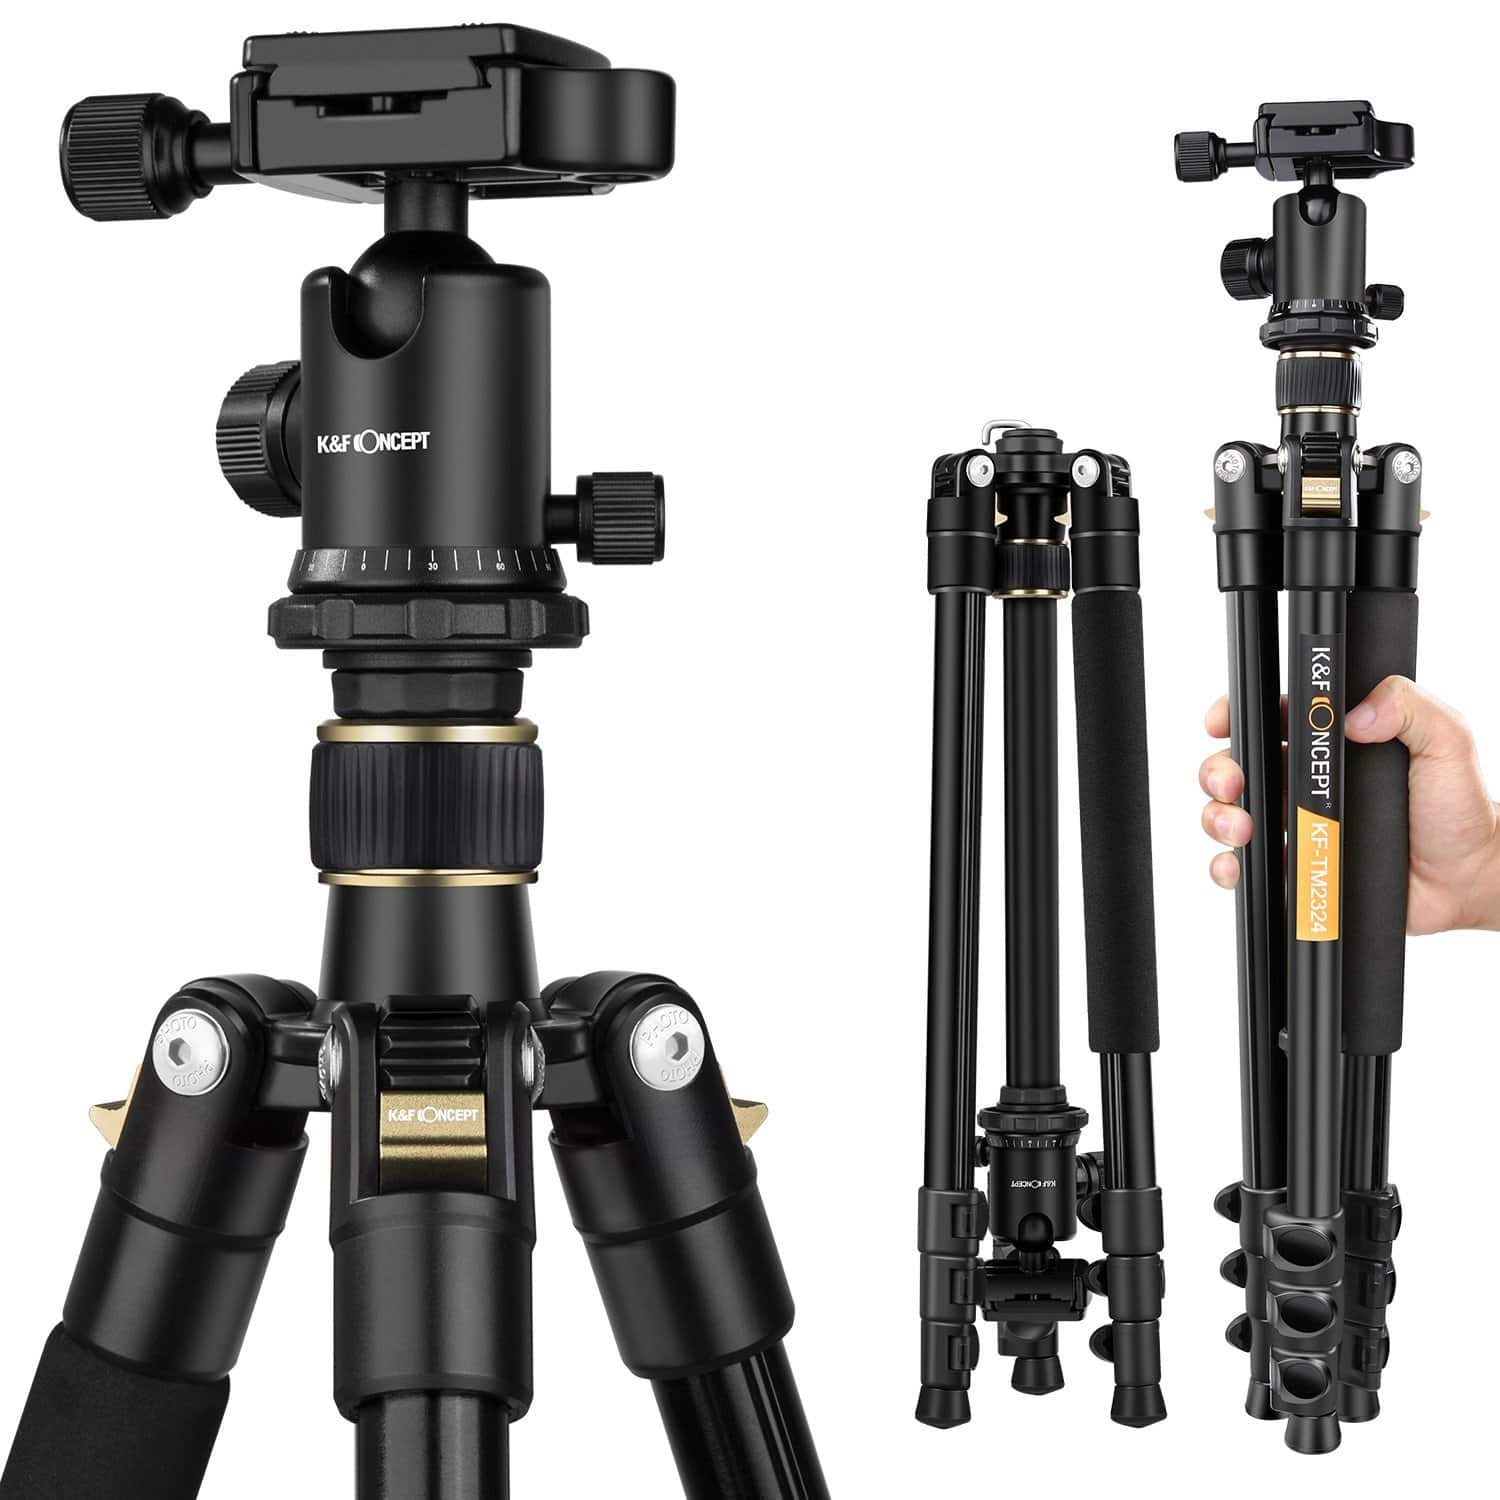 62'' Lightweight and Compact Aluminum Camera Tripod - $60 with free shipping after promo code